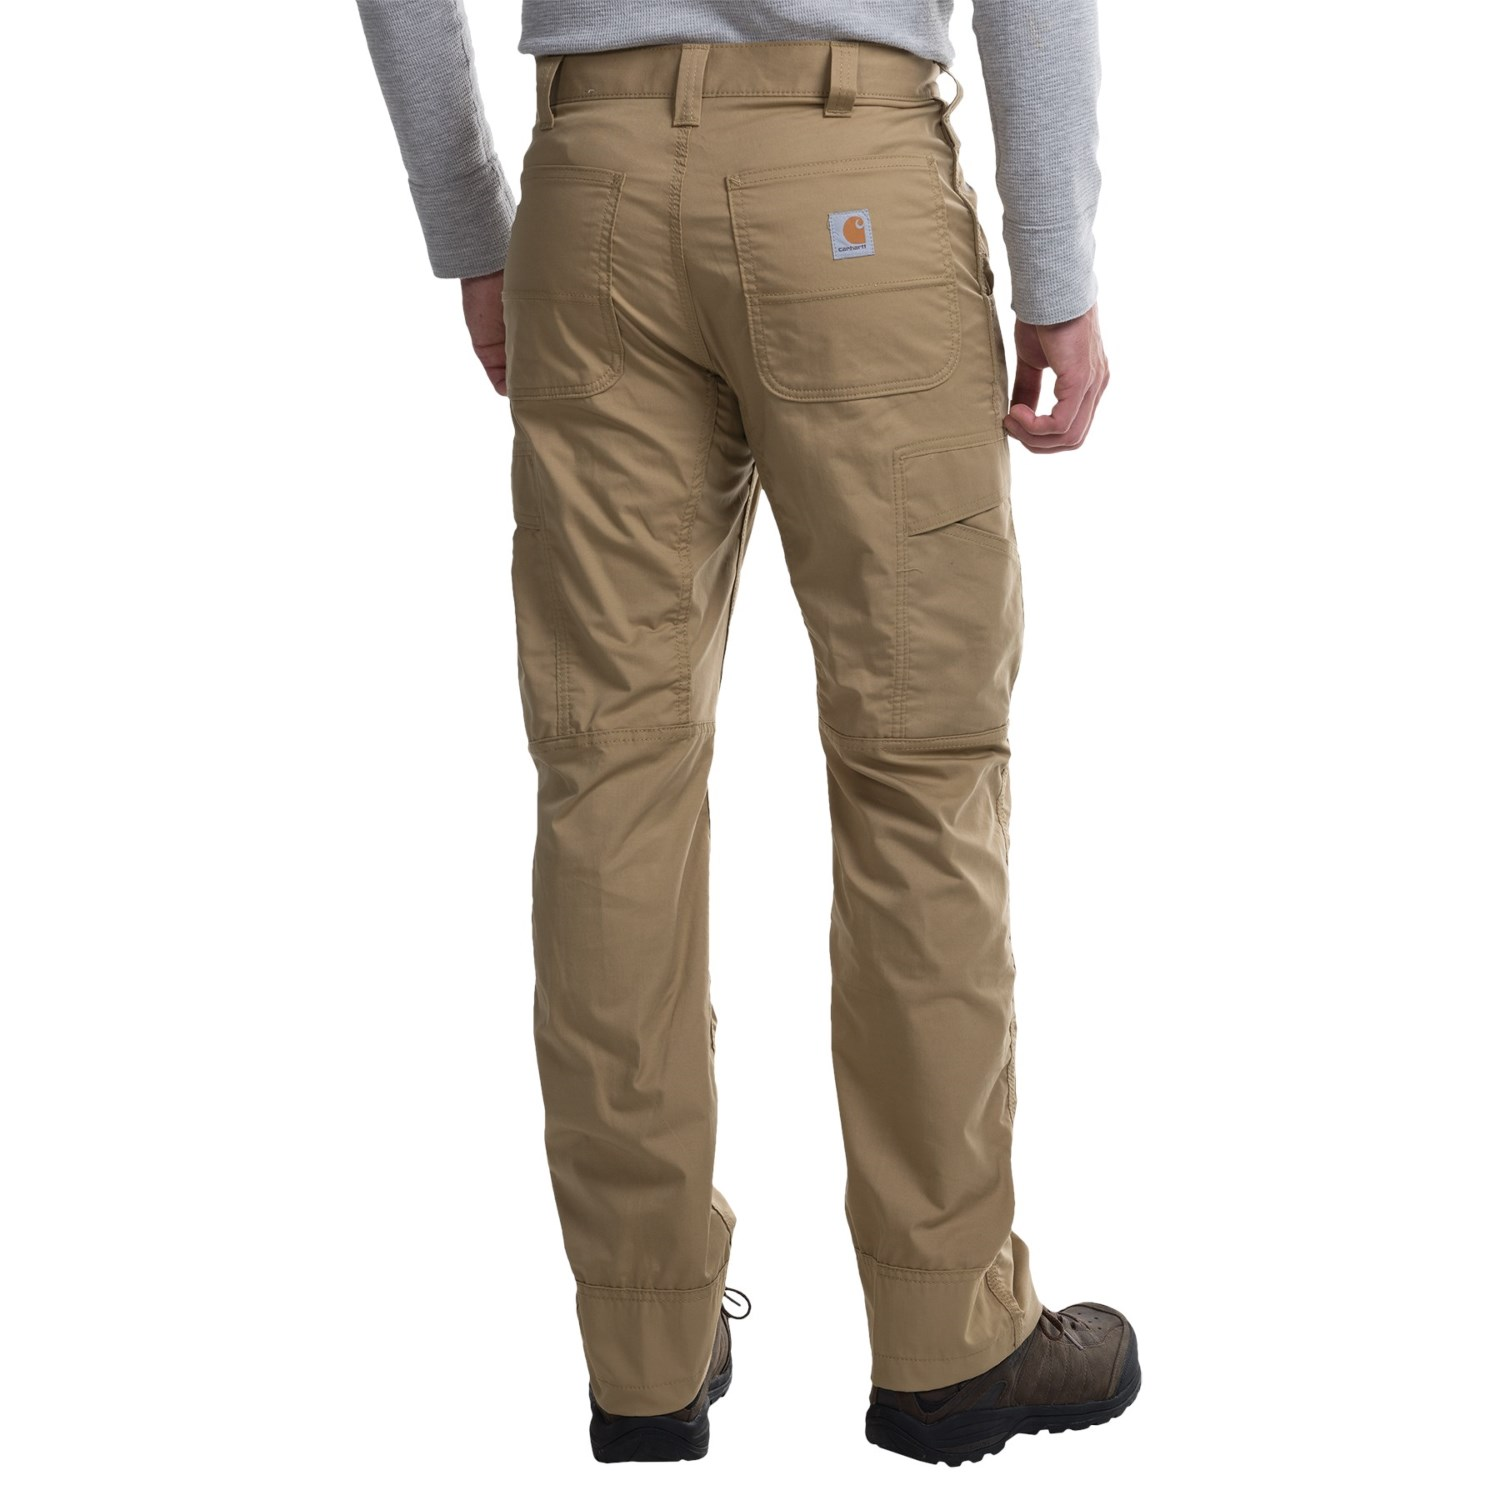 Carhartt Force Extremes Cargo Pants (For Men)